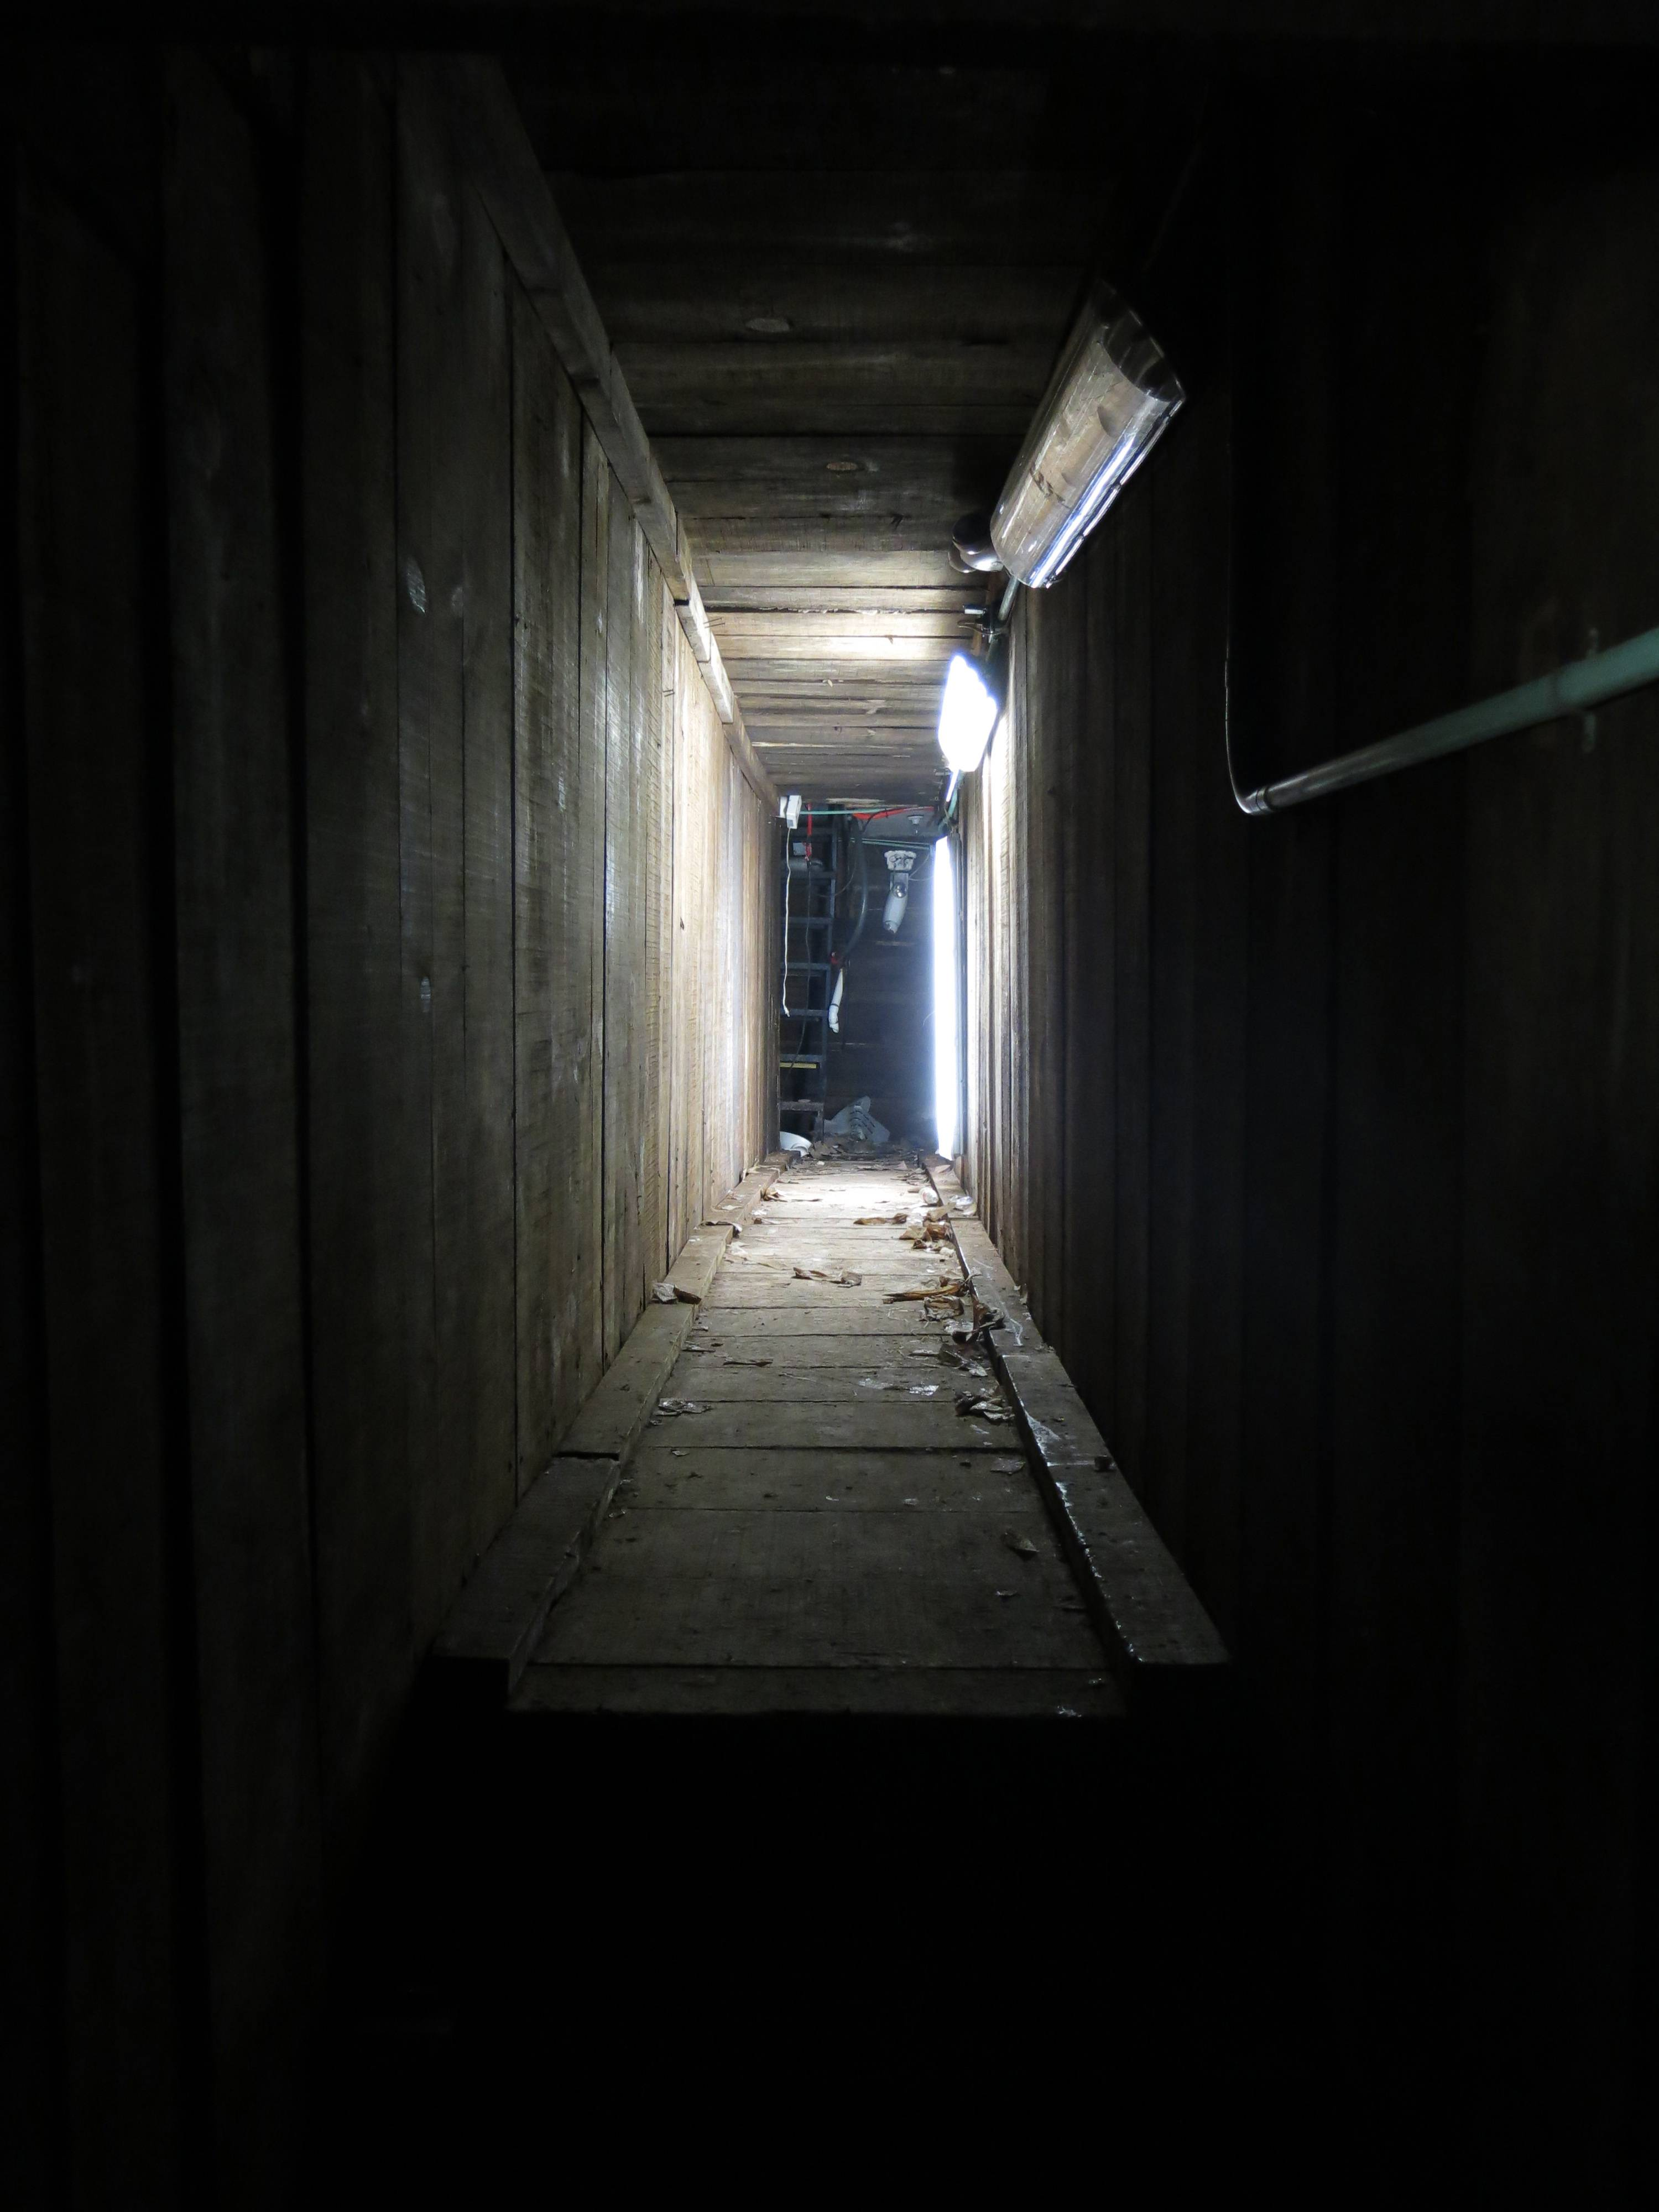 "An interconnected tunnel in the city's drainage system that infamous drug boss Joaquin Guzman Loera, ""El Chapo"" used to evade authorities is shown, in the city of Culiacan, Mexico. A day after troops narrowly missed infamous Guzman in Culiacan, one of his top aides was arrested. Officials said he told investigators that he picked up Guzman from a drainage pipe and helped him flee to Mazatlan but a wiretap being monitored by ICE agents in southern Arizona provided the final clue that led to the arrest."